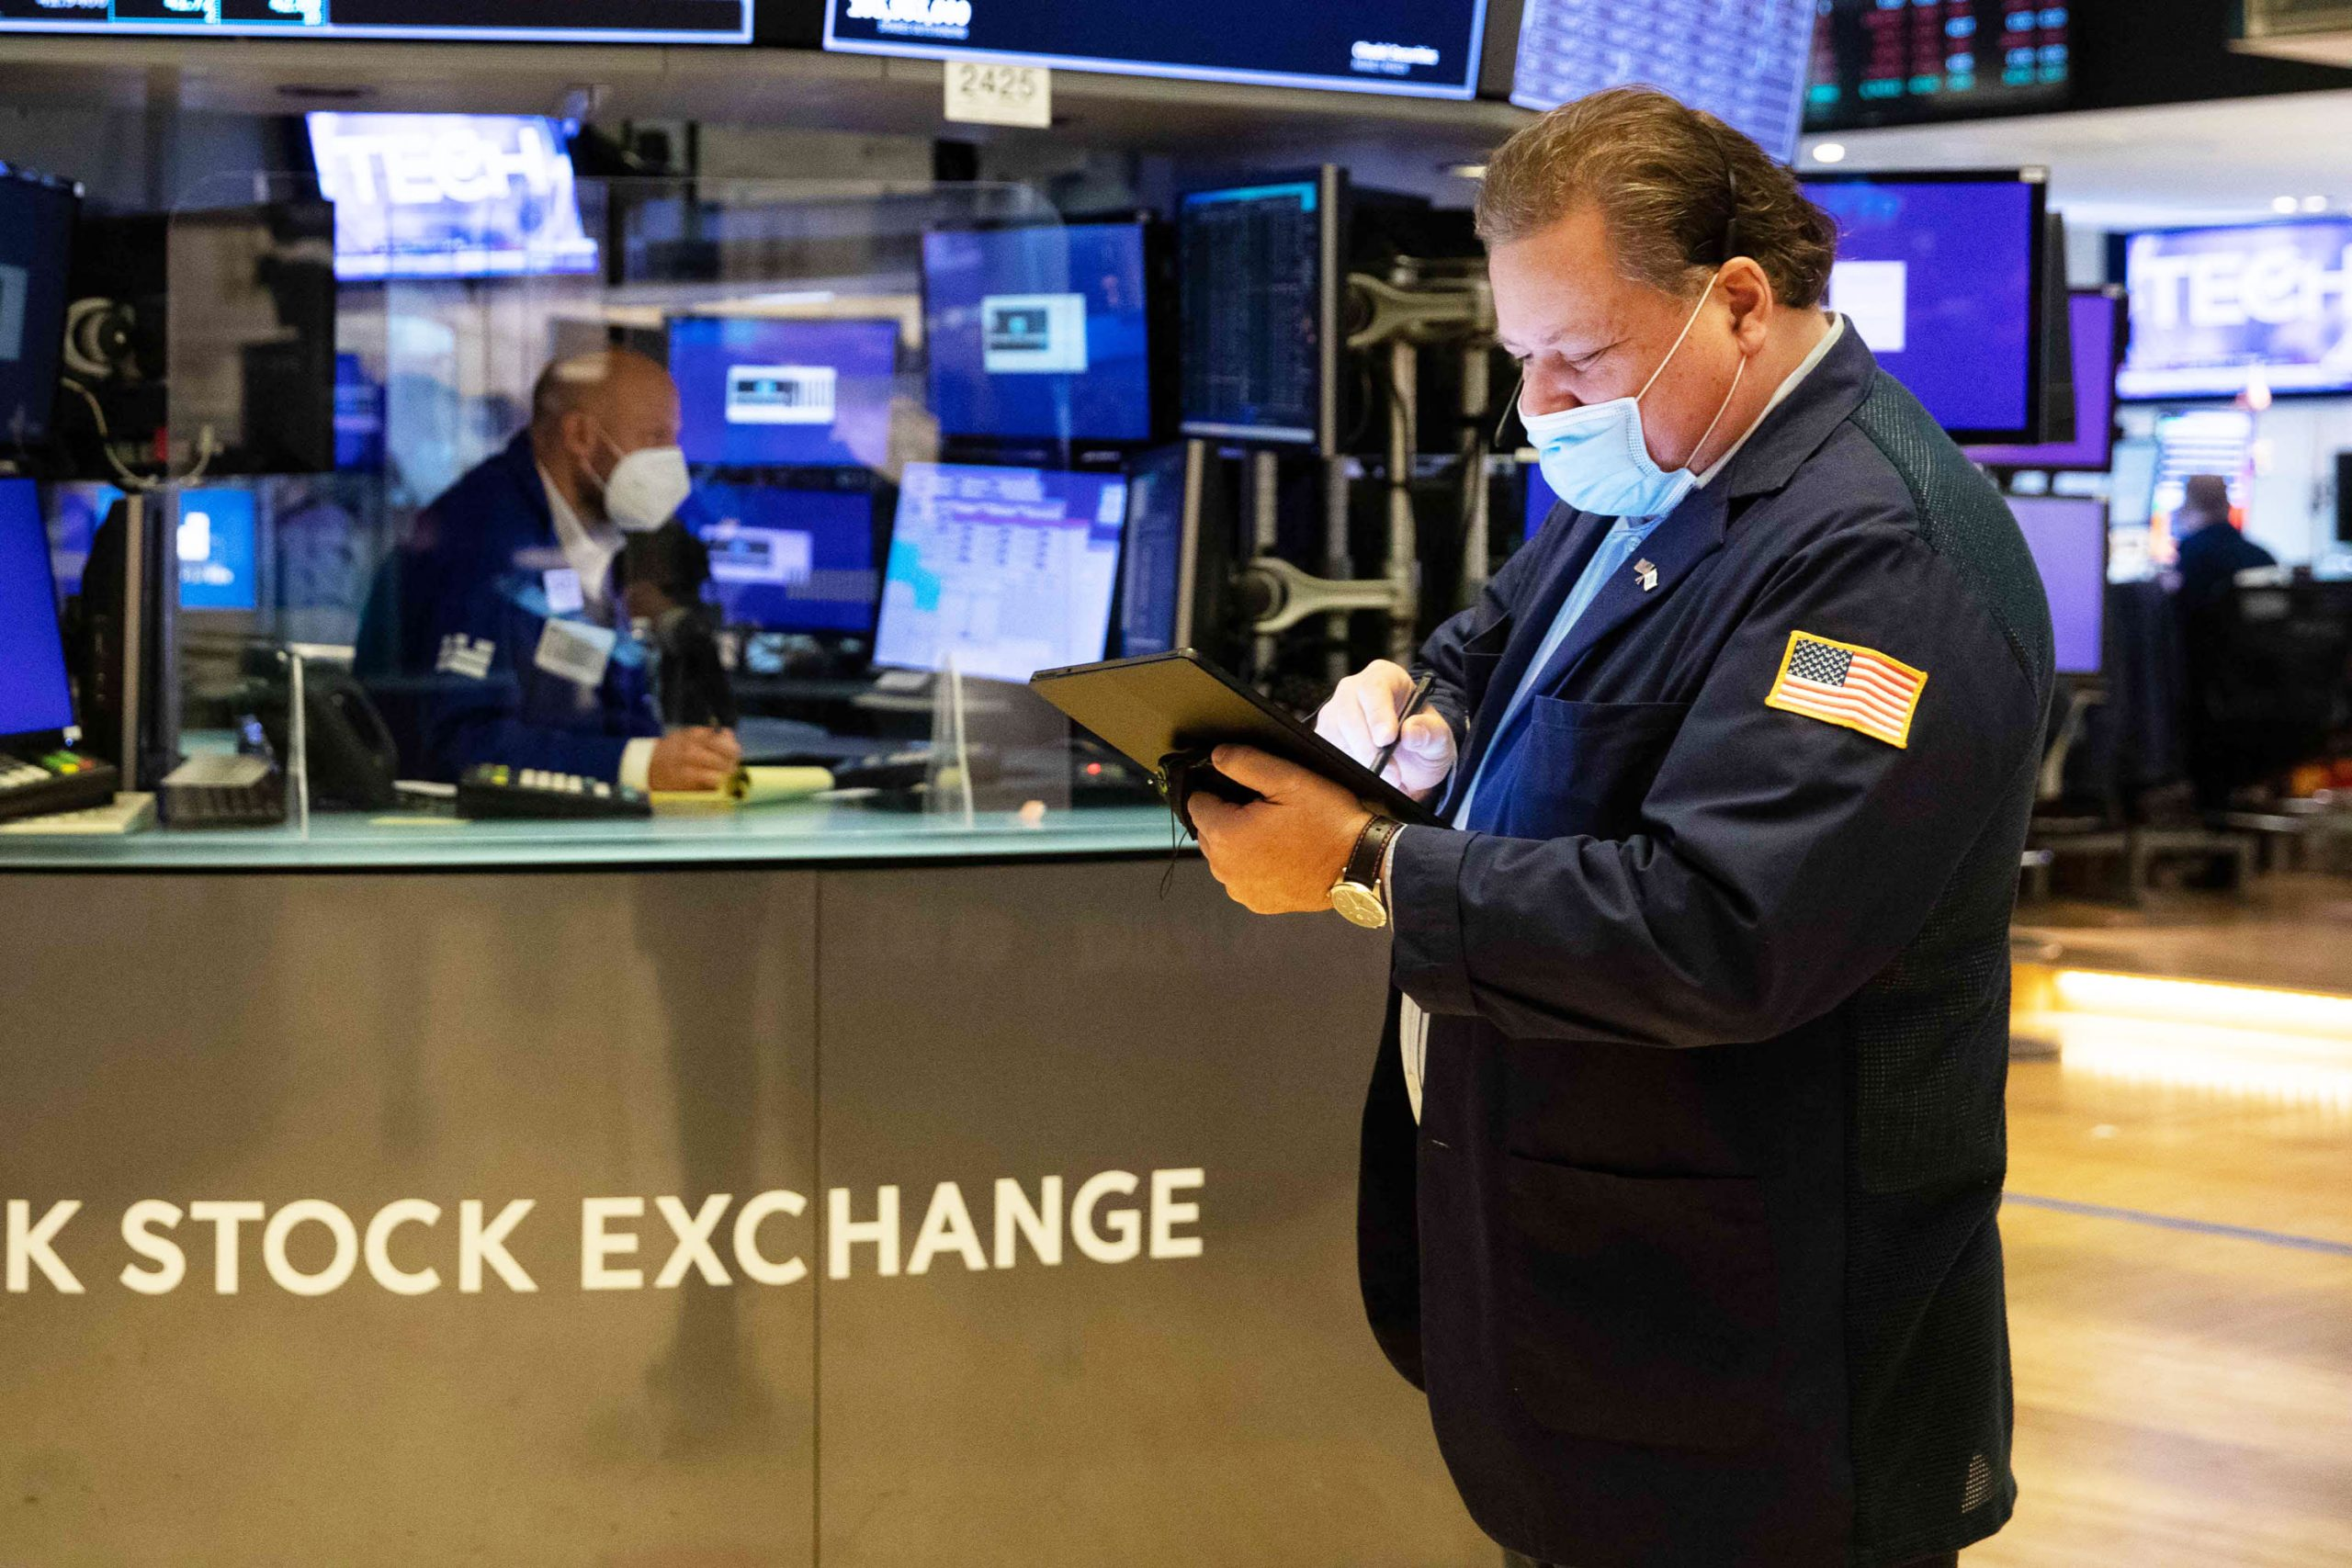 Stock futures are flat in overnight trading after Dow closes above 34,000 for the first time